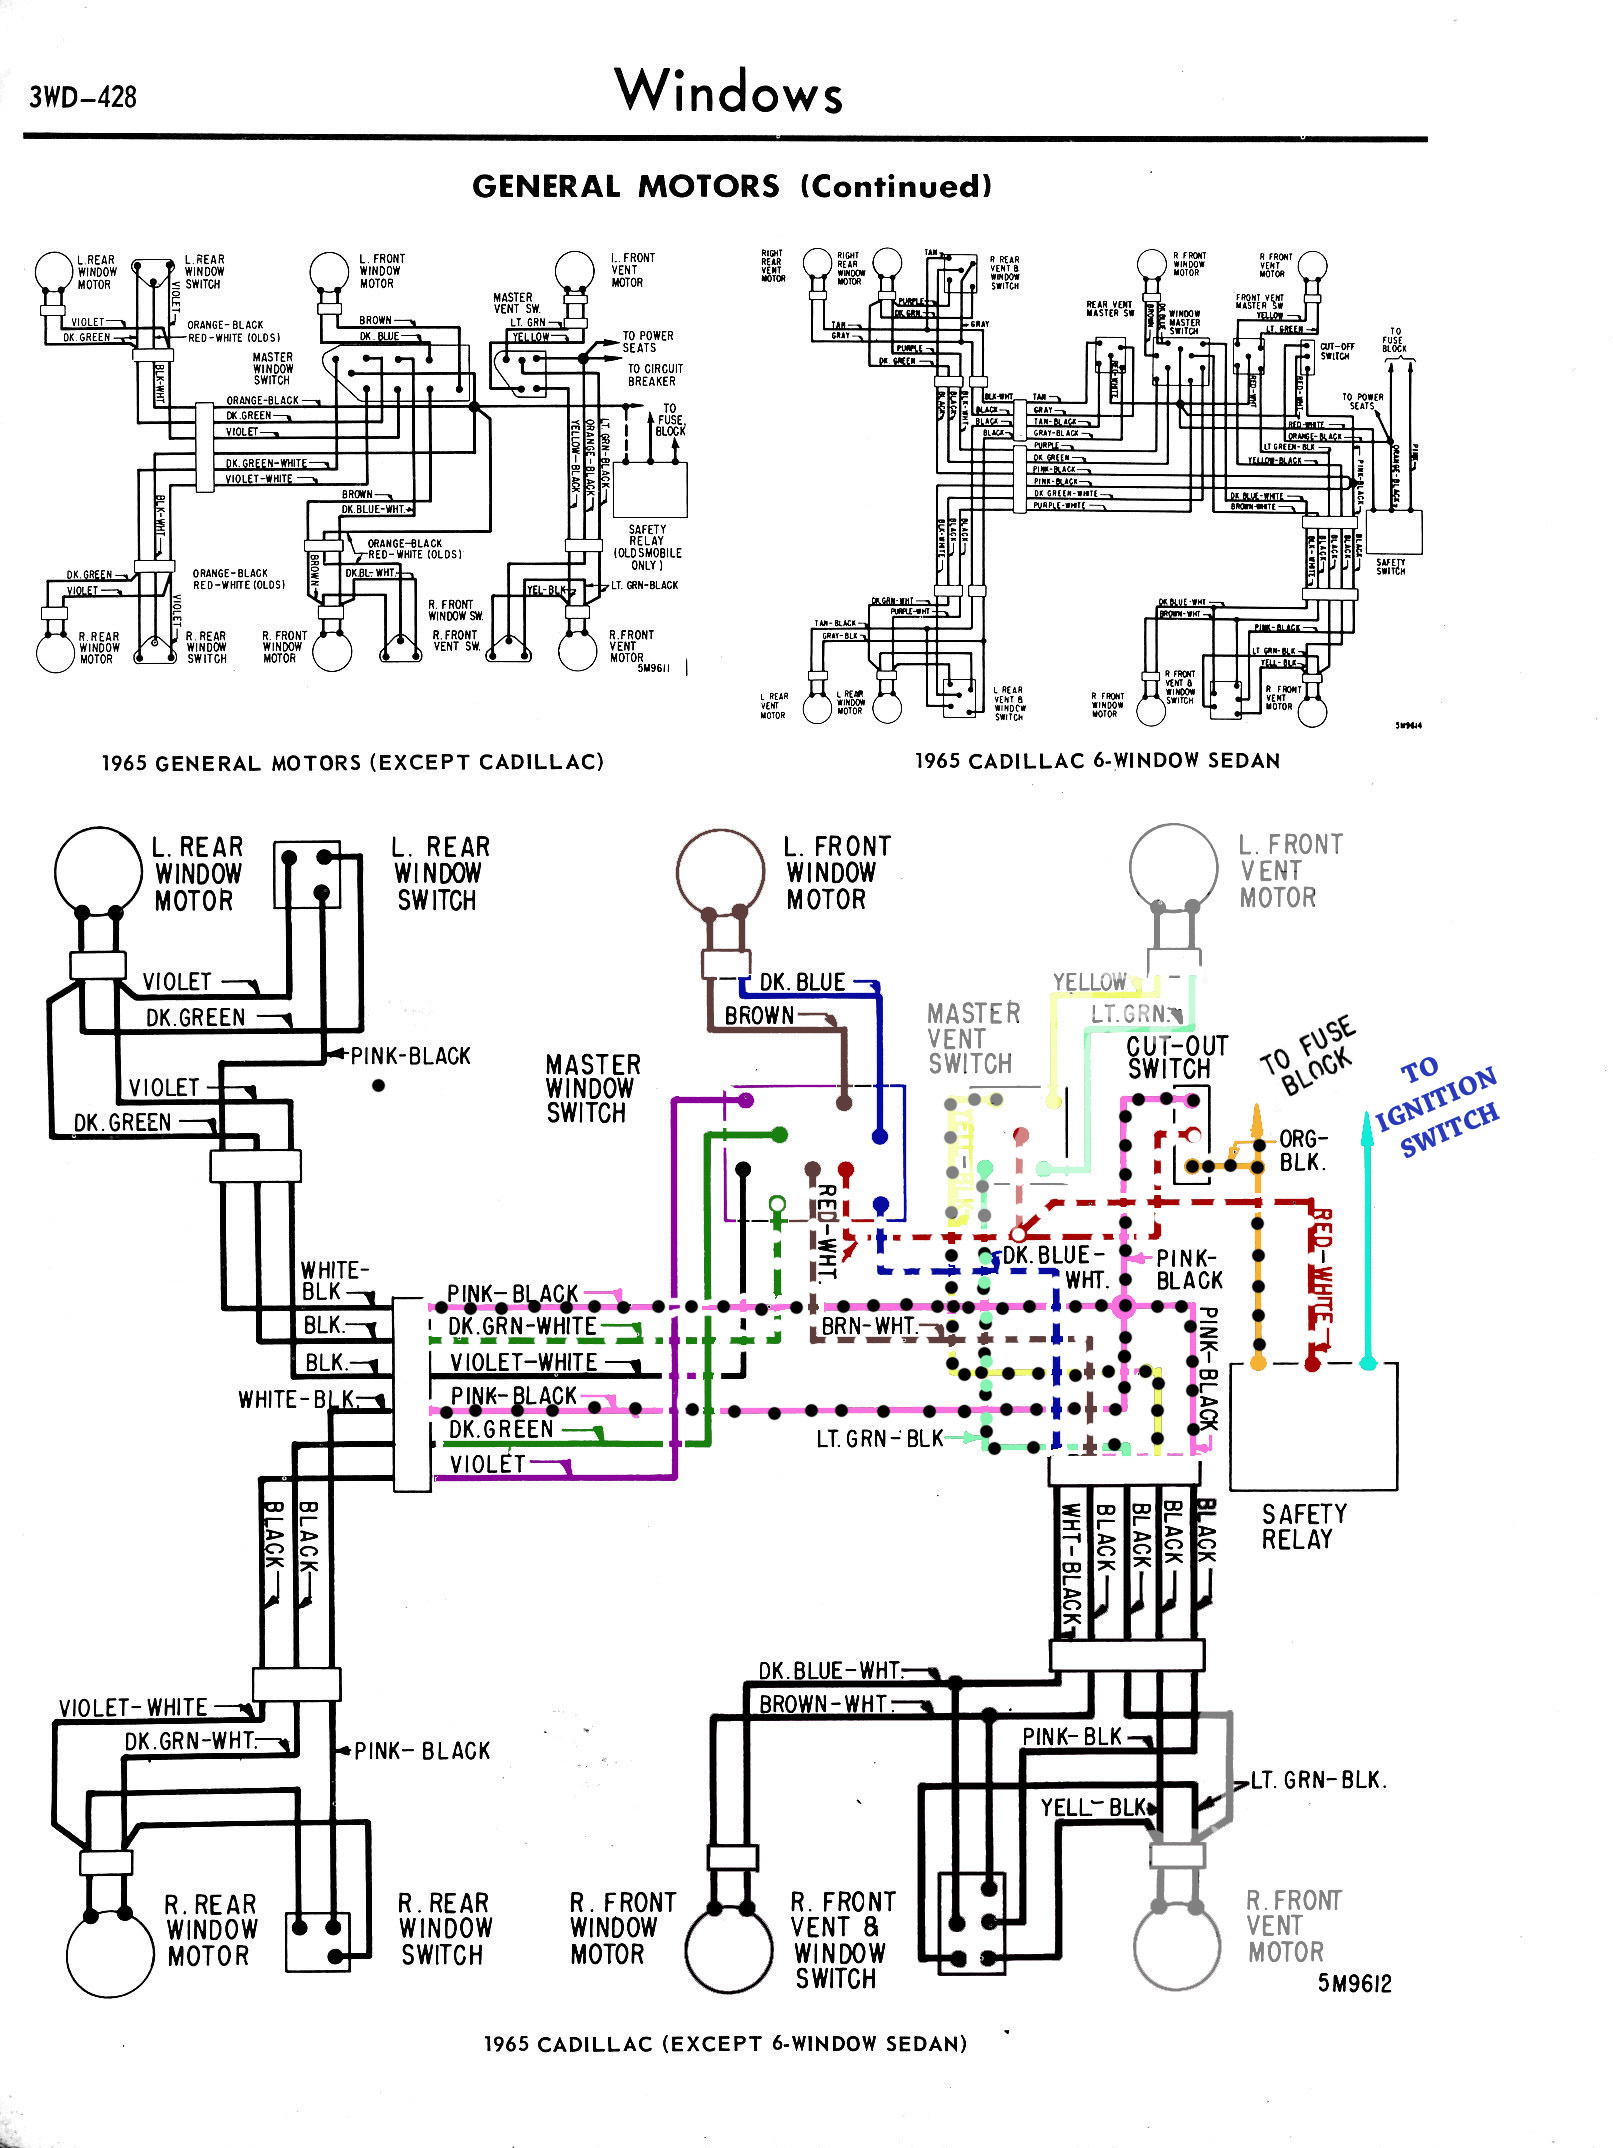 1997 Cadillac Deville Wiring Diagram Colors Everything About 2001 Fuel Pump Images Gallery